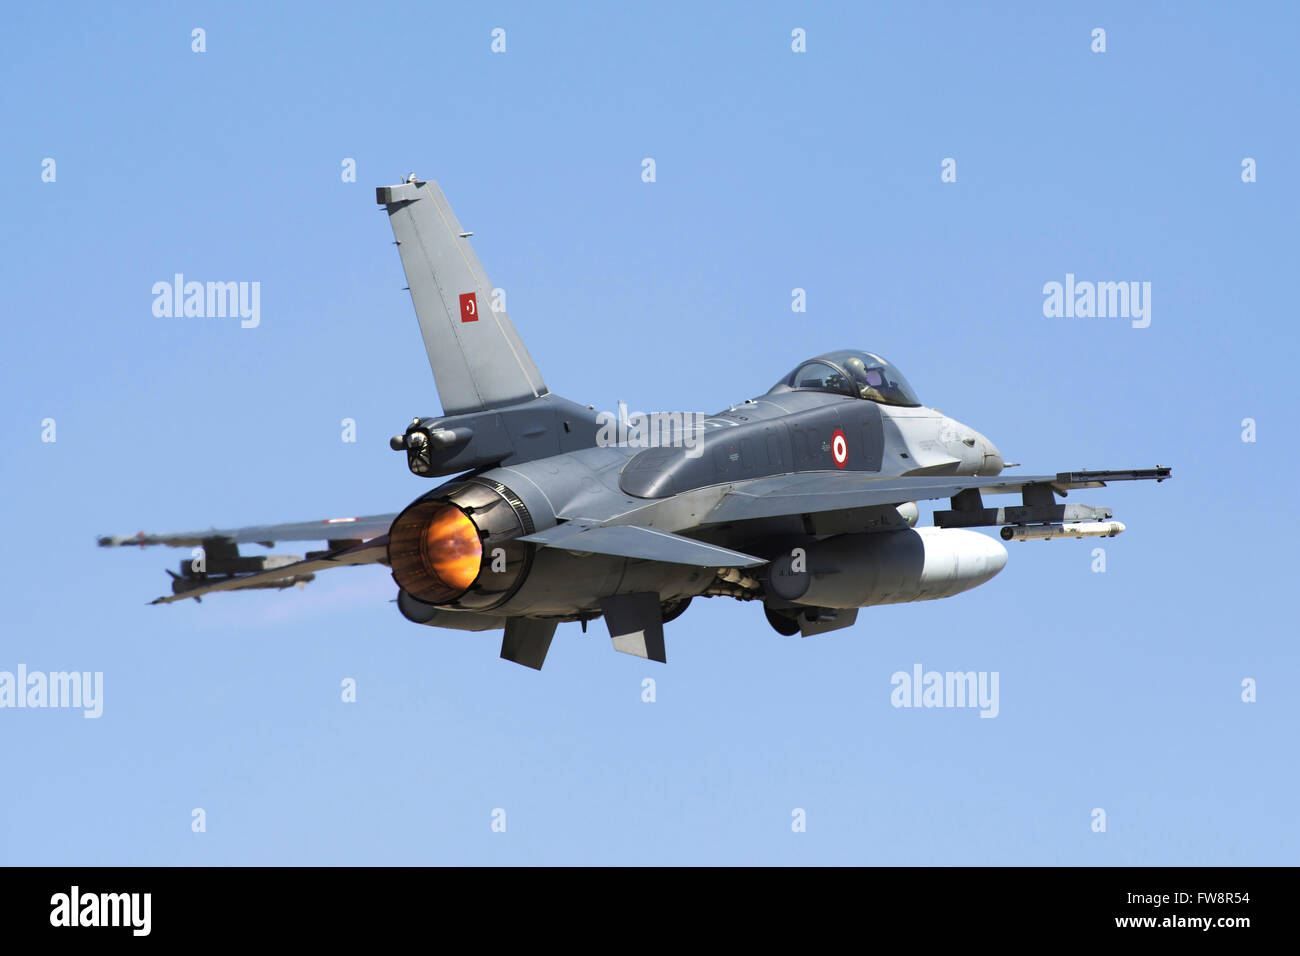 A Turkish Air Force modern F-16D Block50+ Fighting Falcon taking off, equipped with conformal fuel tanks. - Stock Image